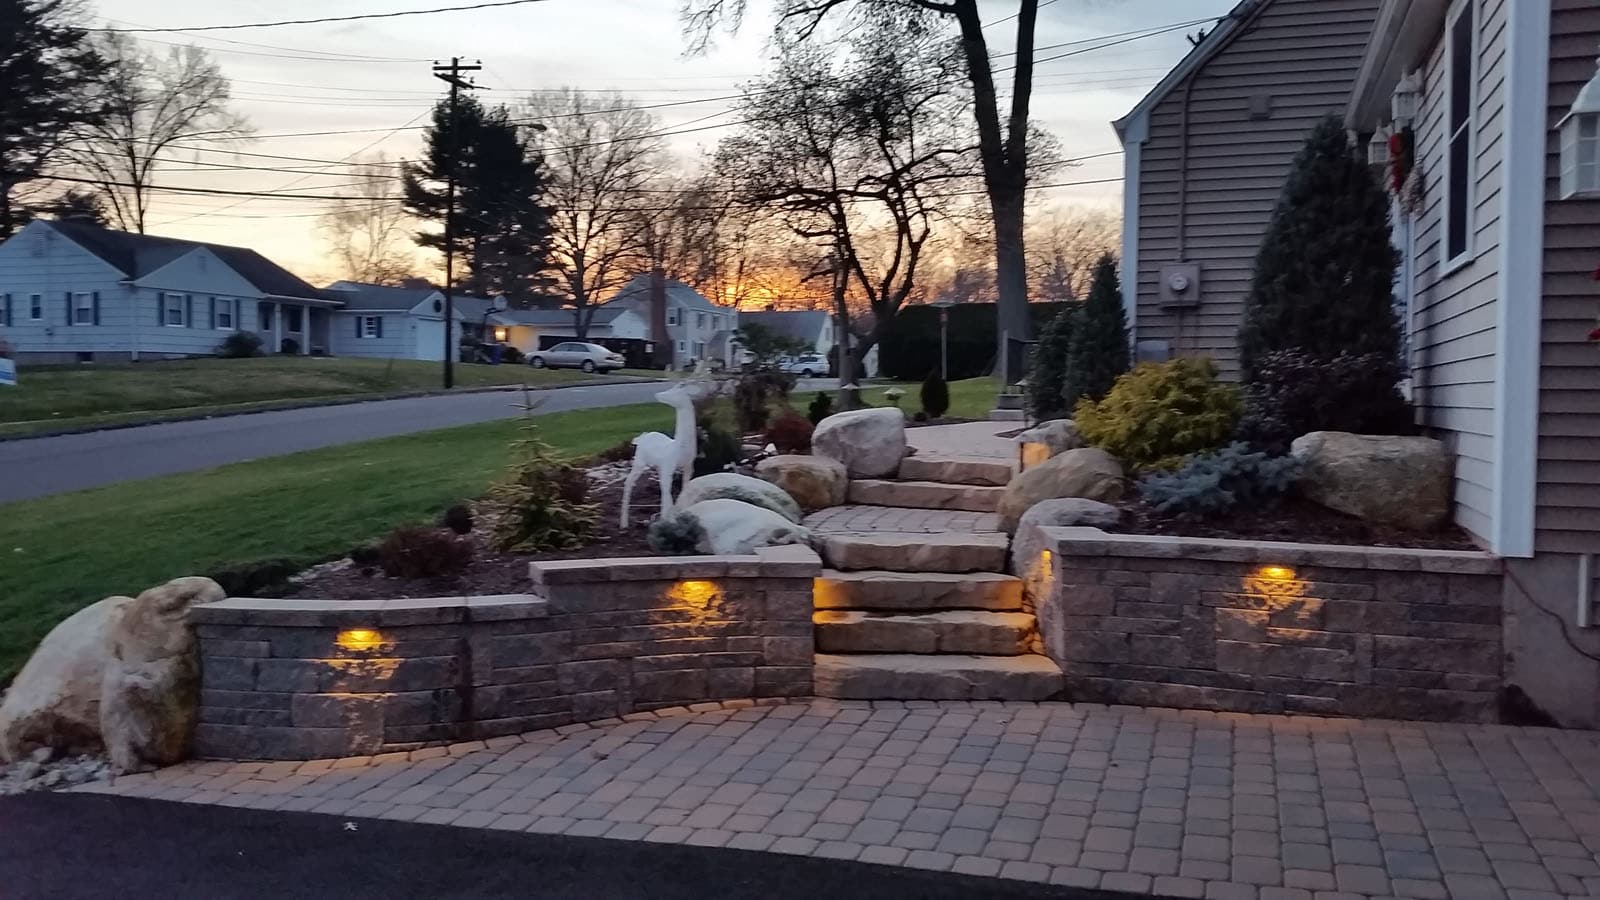 Of The Great Outdoor Lighting And Water Feature Projects Completed With Our Materials Click On Any Image To Enlarge Browse Through Photos